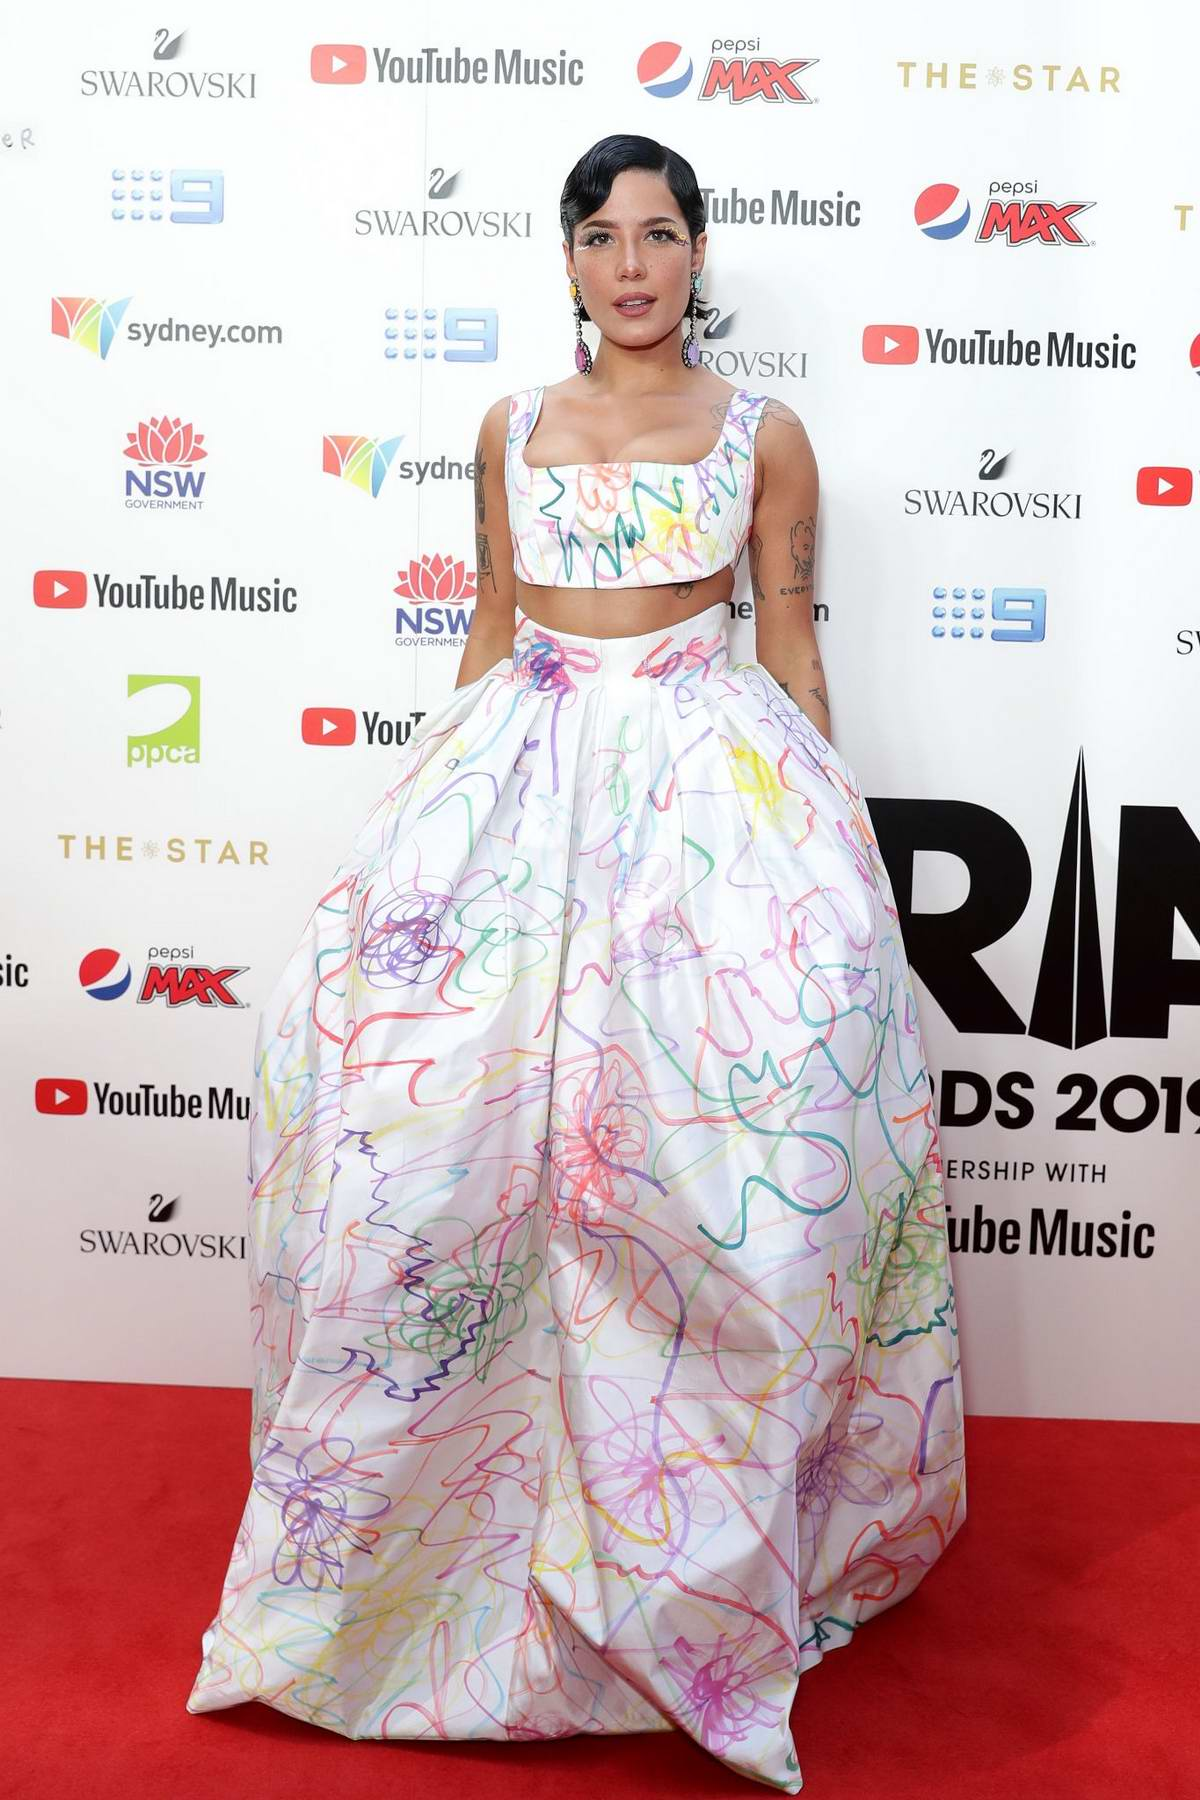 Halsey attends the 33rd Annual Aria Awards at the Star in Sydney, Australia